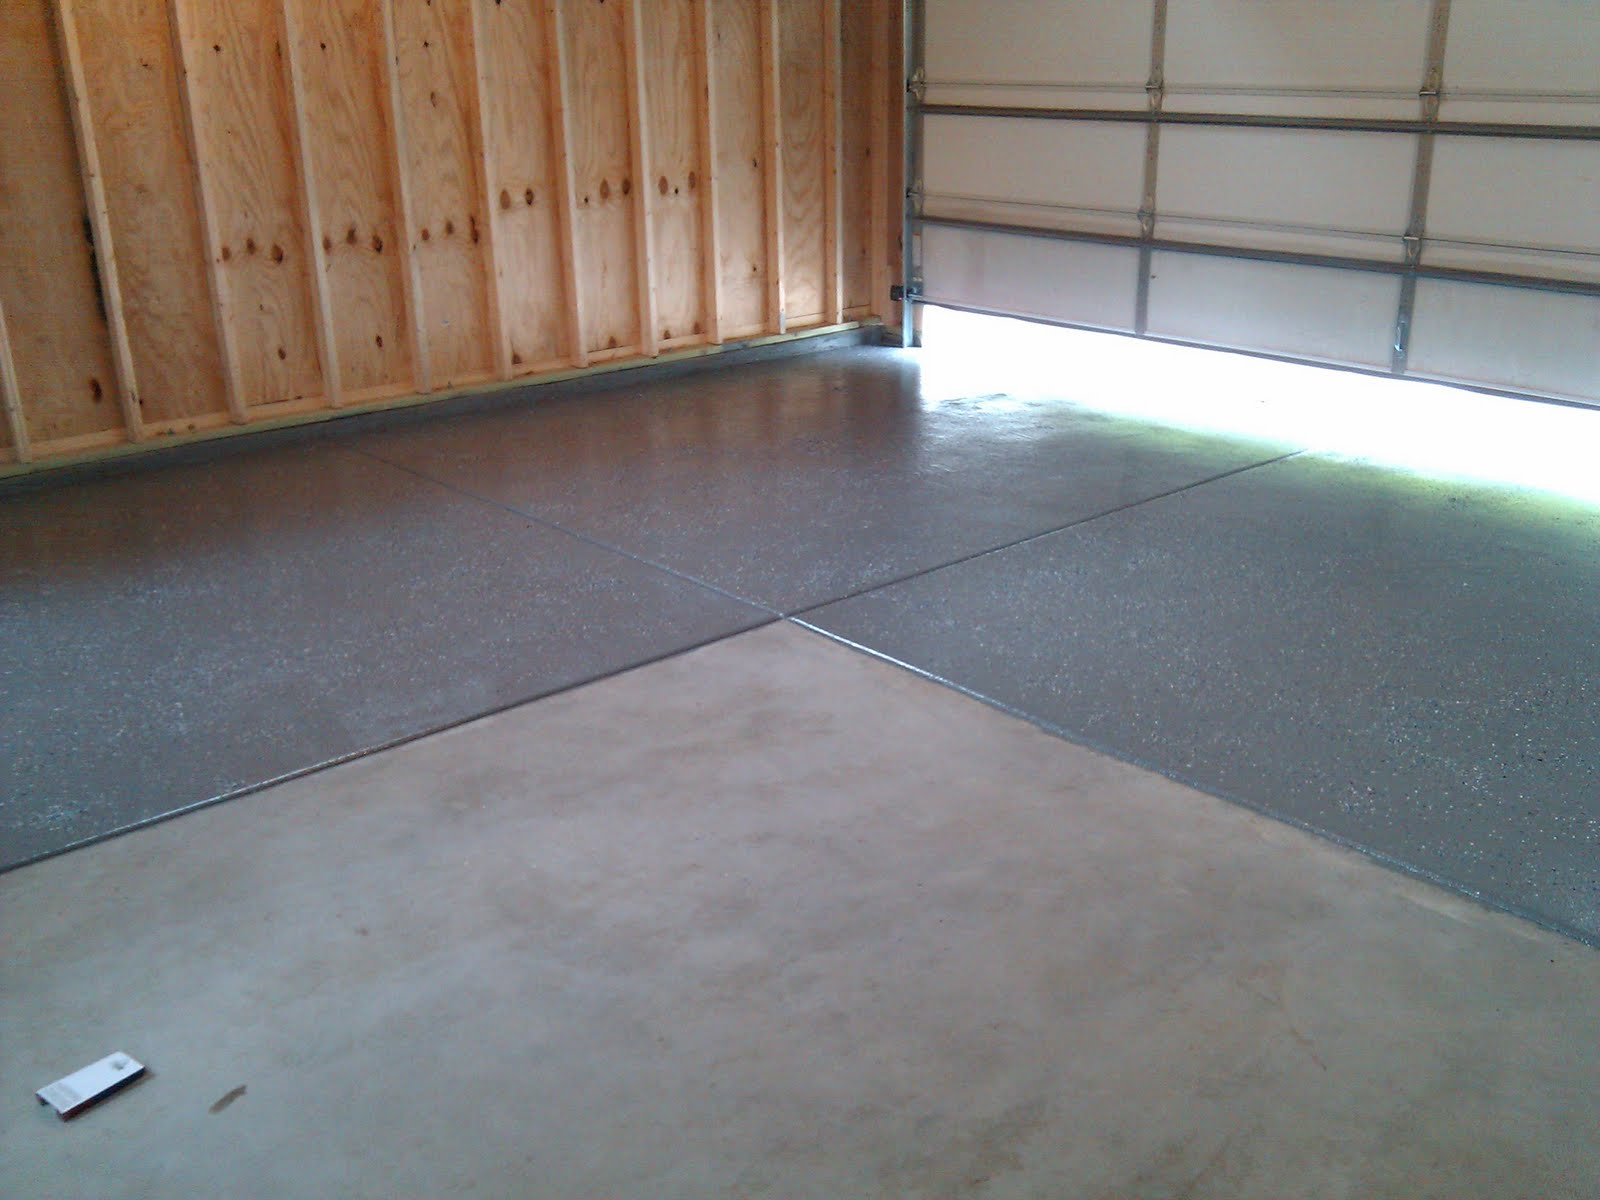 Garage floor diy epoxy floor kit from rust oleum for Garage deck